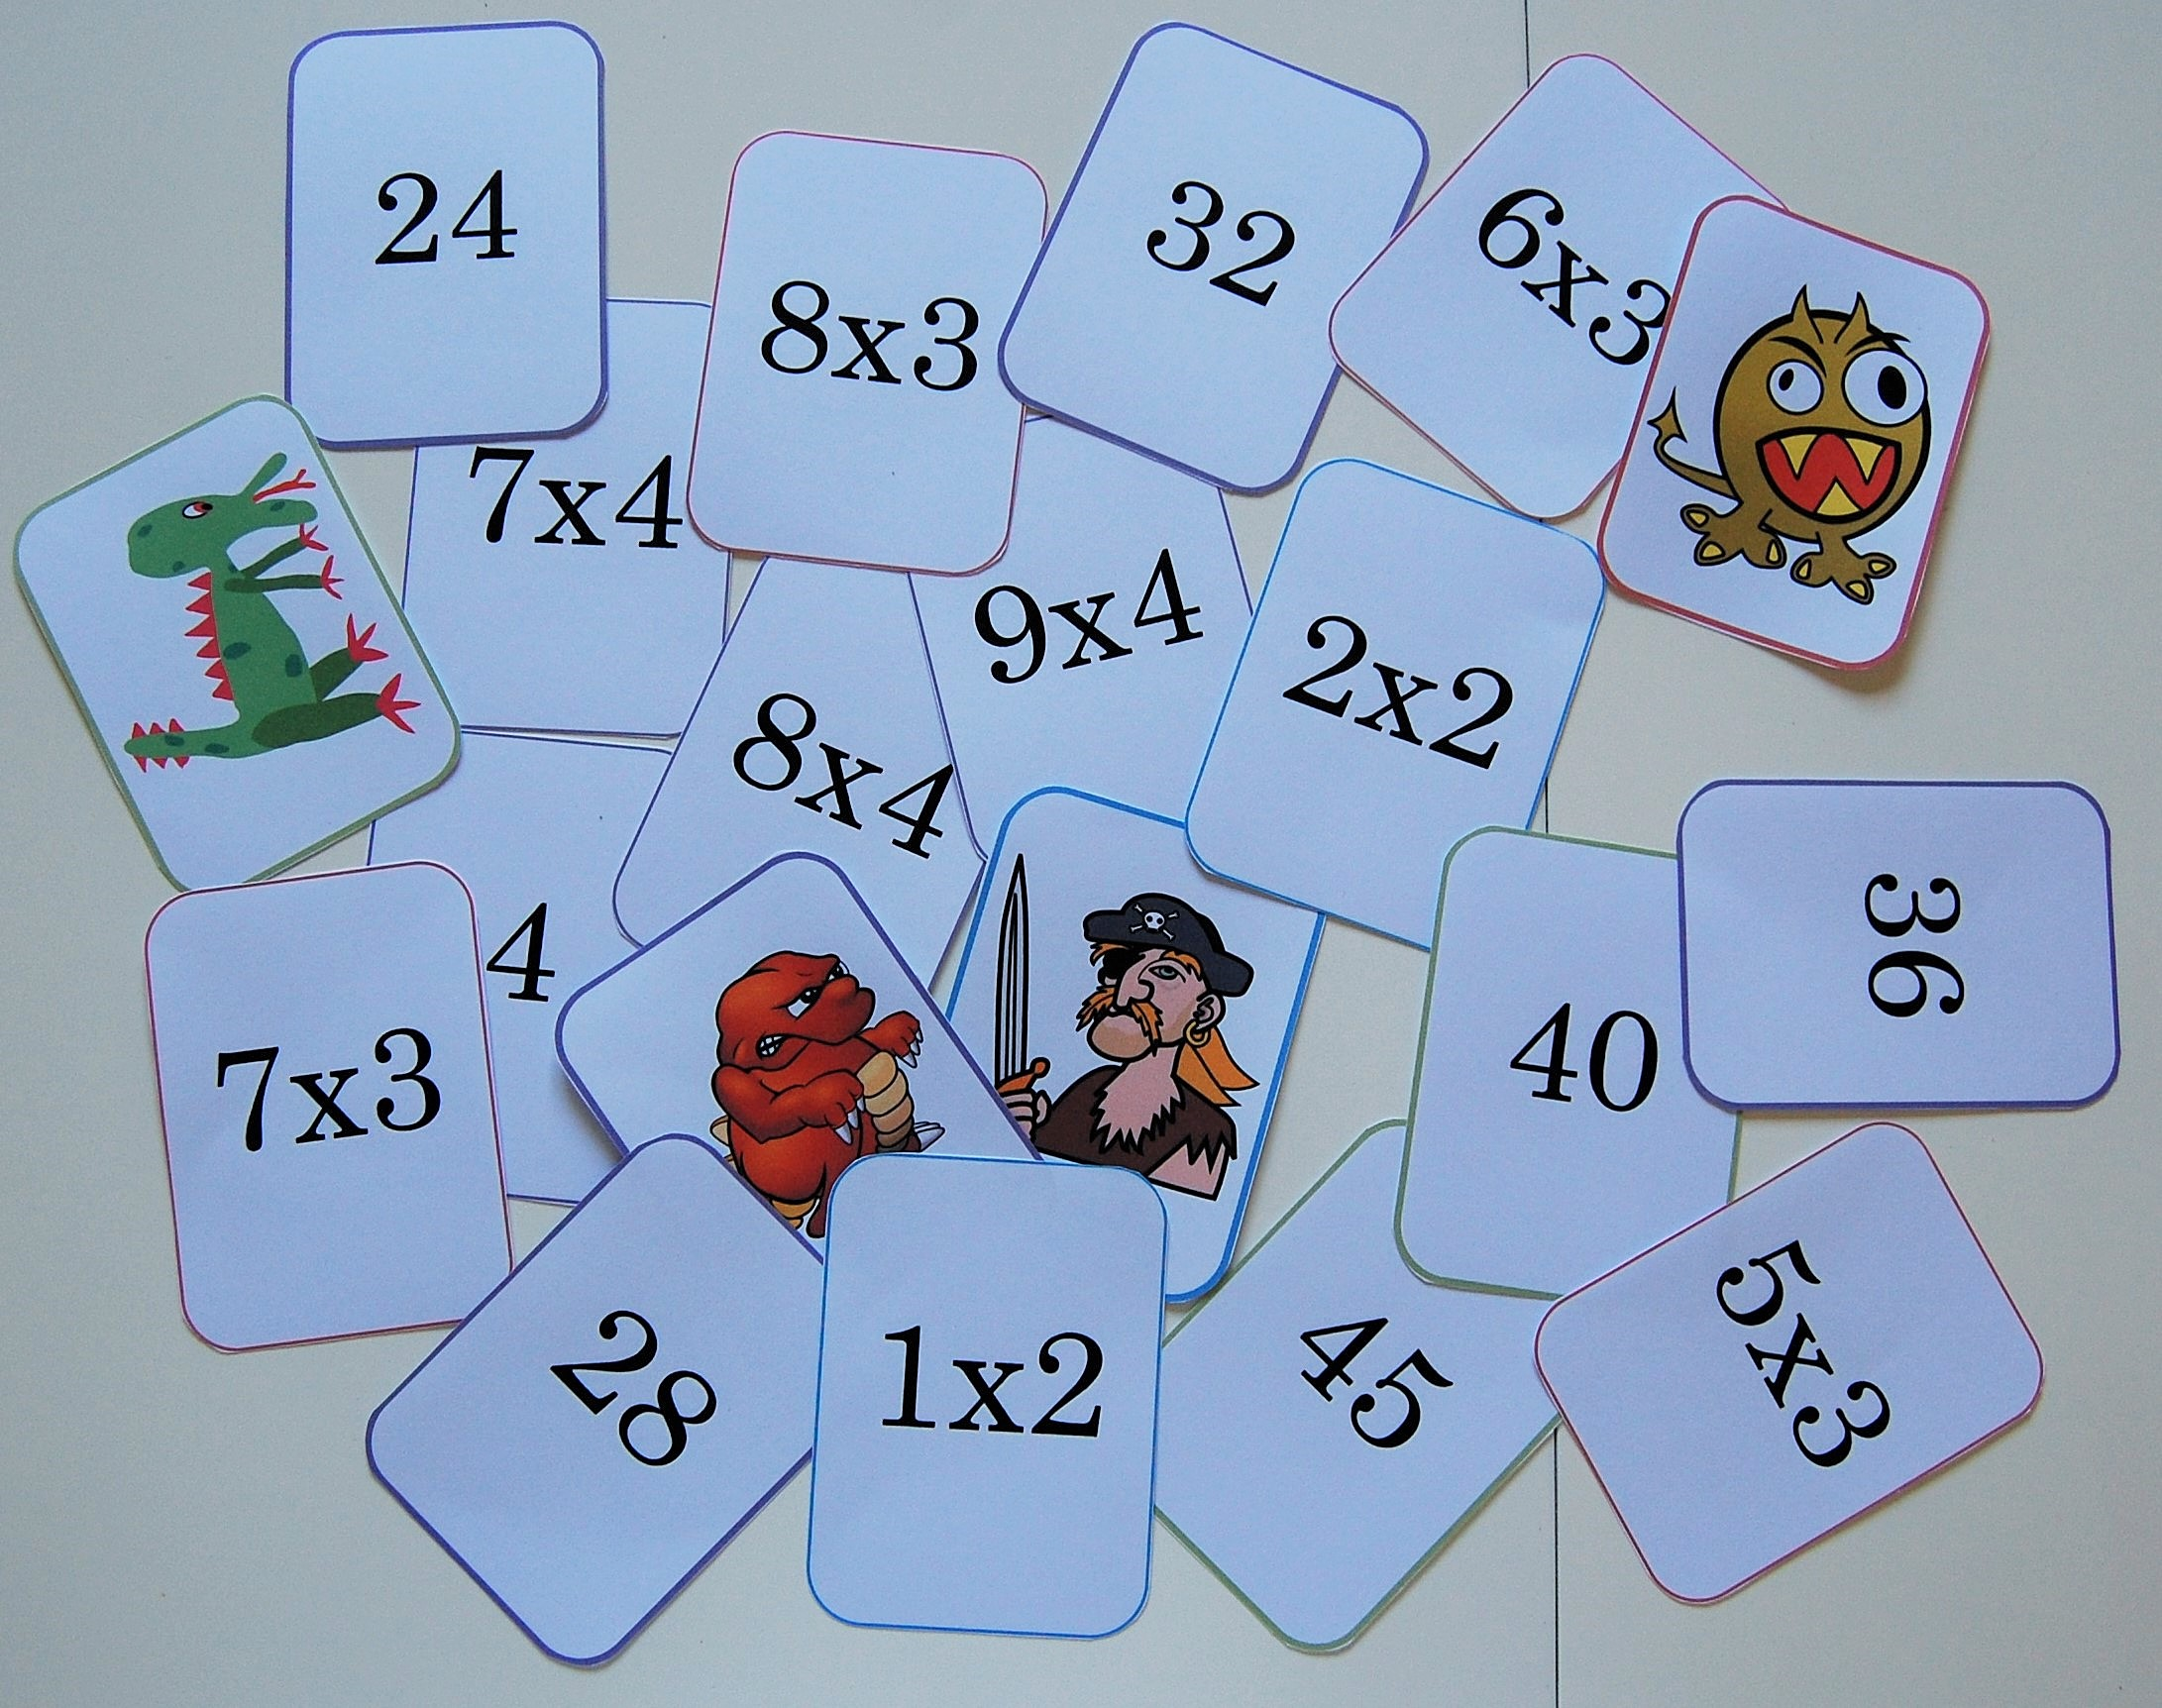 Mistigris des tables de multiplication 1 lire crire for Table de multiplication de 7 jeux